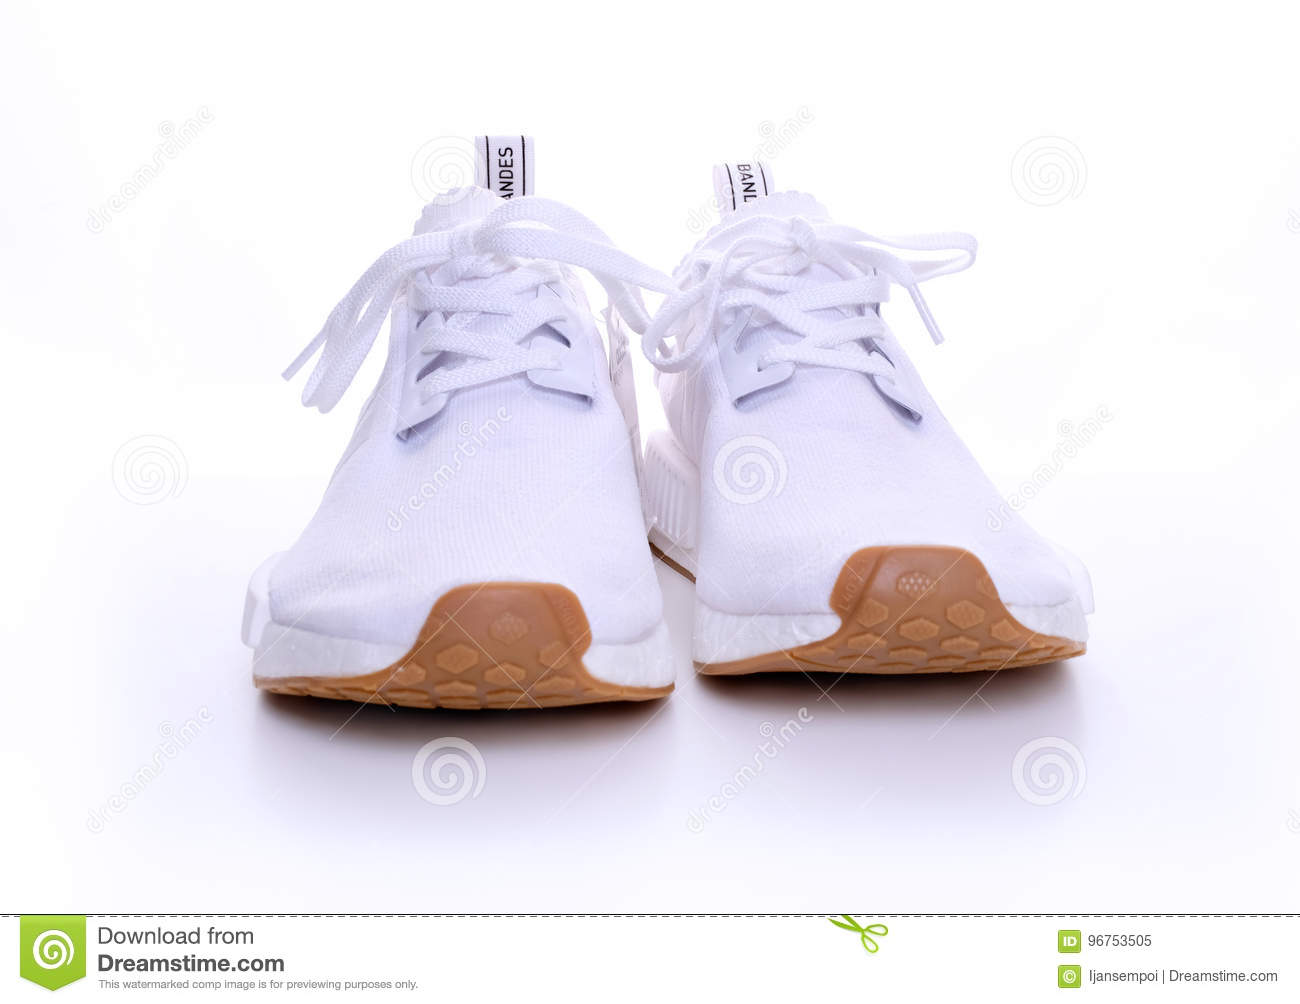 a98b222bb1c7d Adidas Original NMD R1 Gum Pack All White Editorial Image - Image of ...